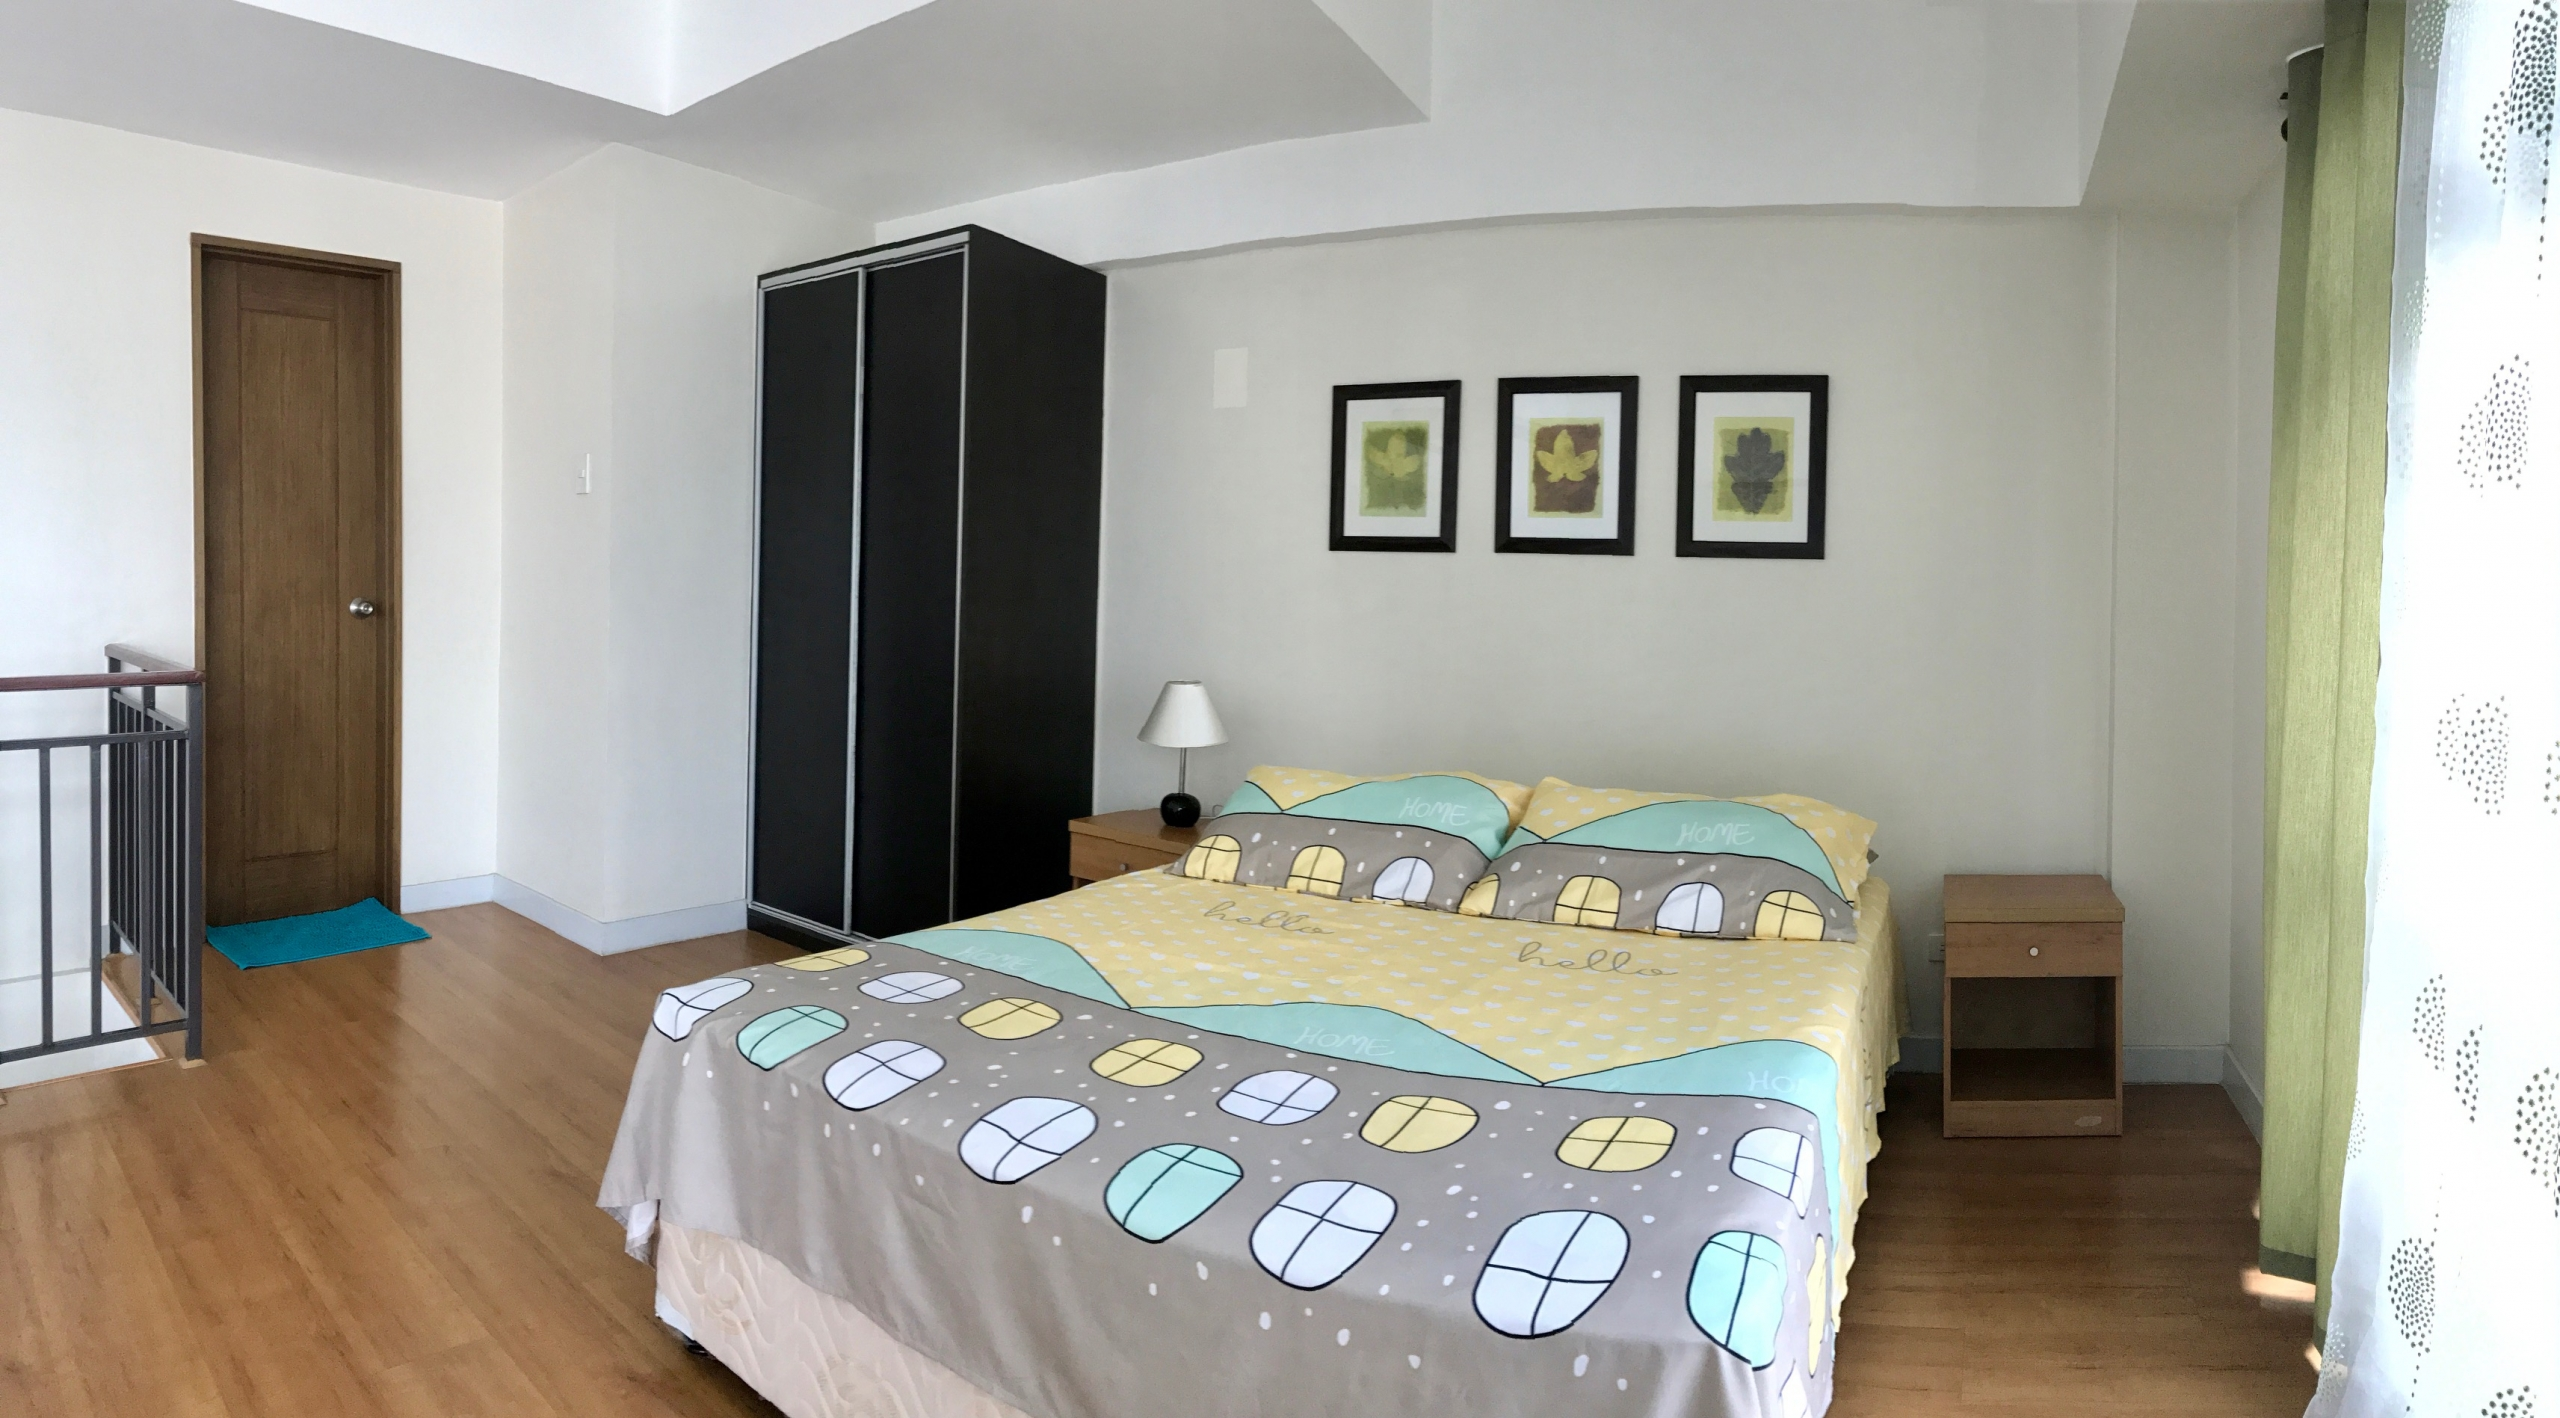 Eton Parkview 2 bedroom condo for sale Legazpi Village, Makati